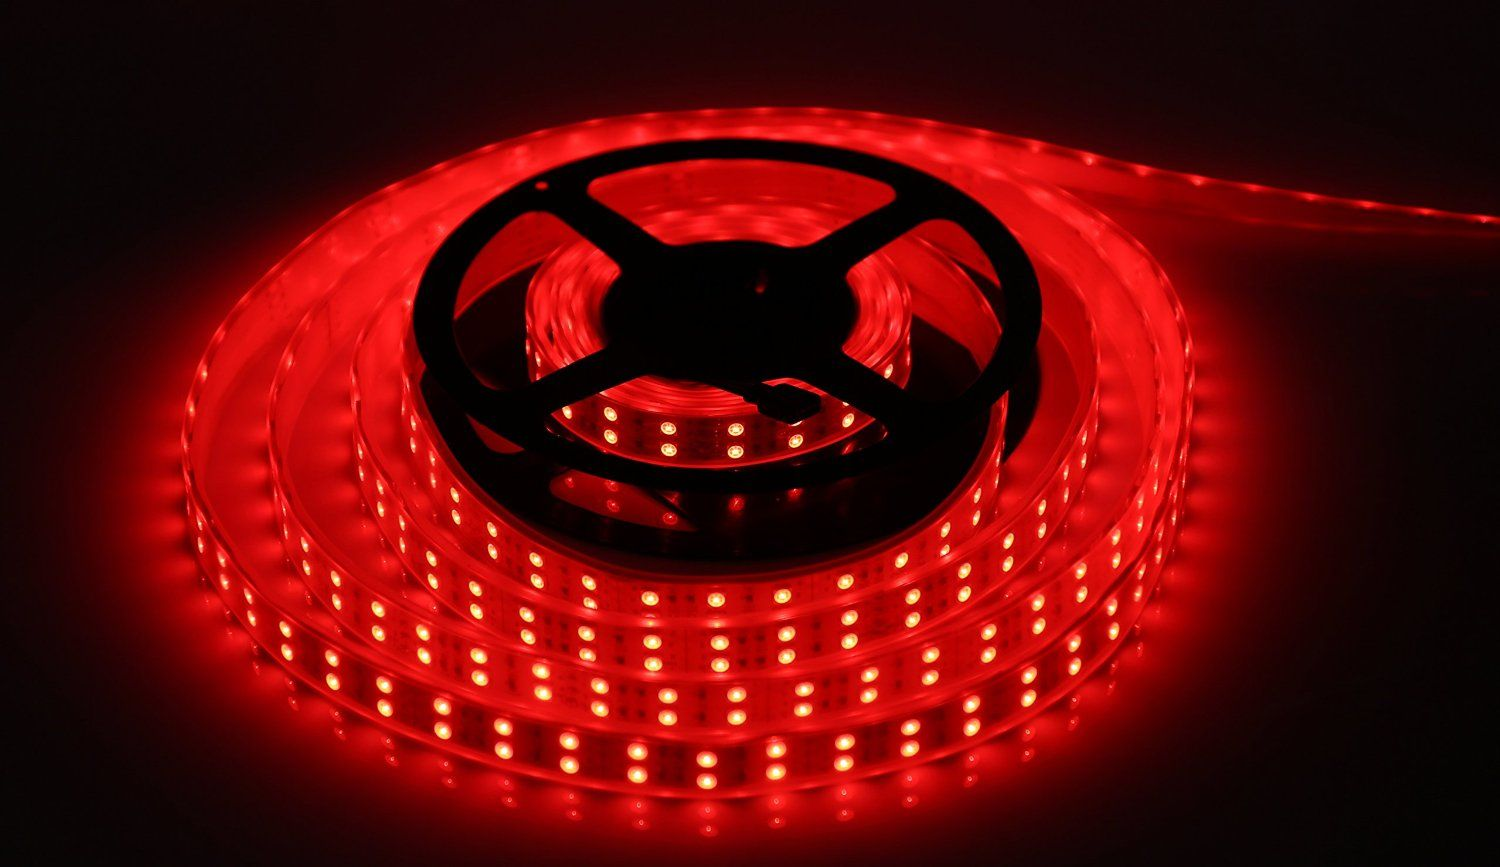 Amazon Com Powermall Led Light Strip 5050 Smd Double Row Rgb Waterproof 16 4ft 5m 600 Leds Flexible Tube Musical I Led Light Strips Strip Lighting Led Lights